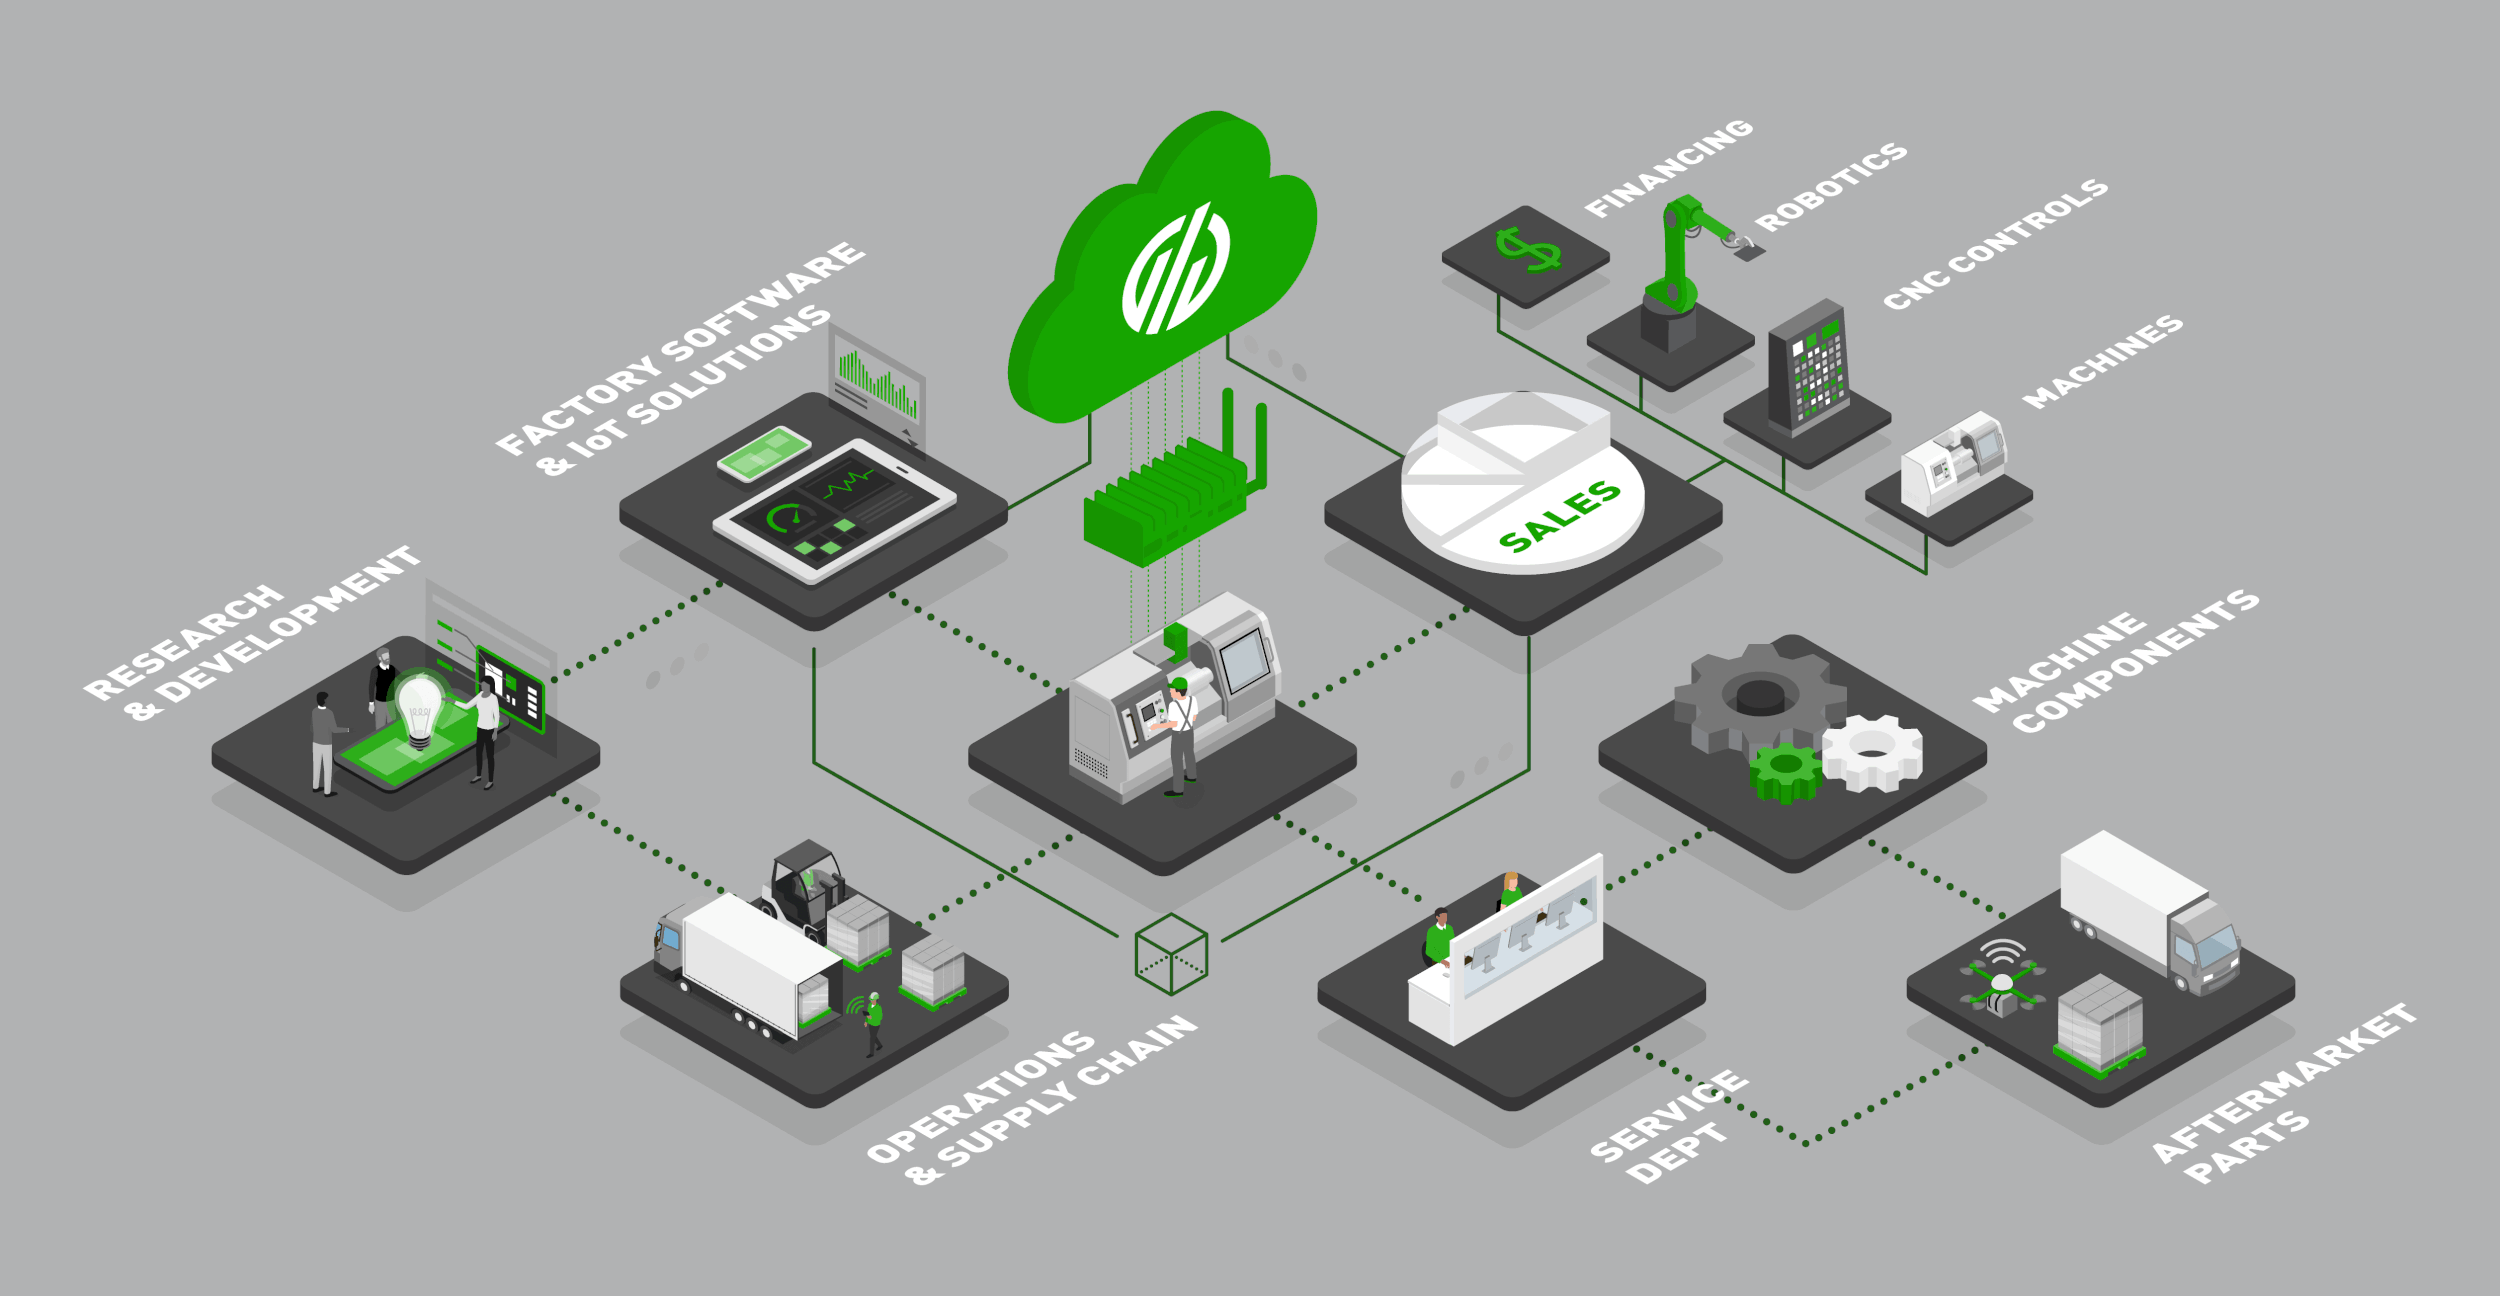 Conceptual Industry 4.0 Connected Factory